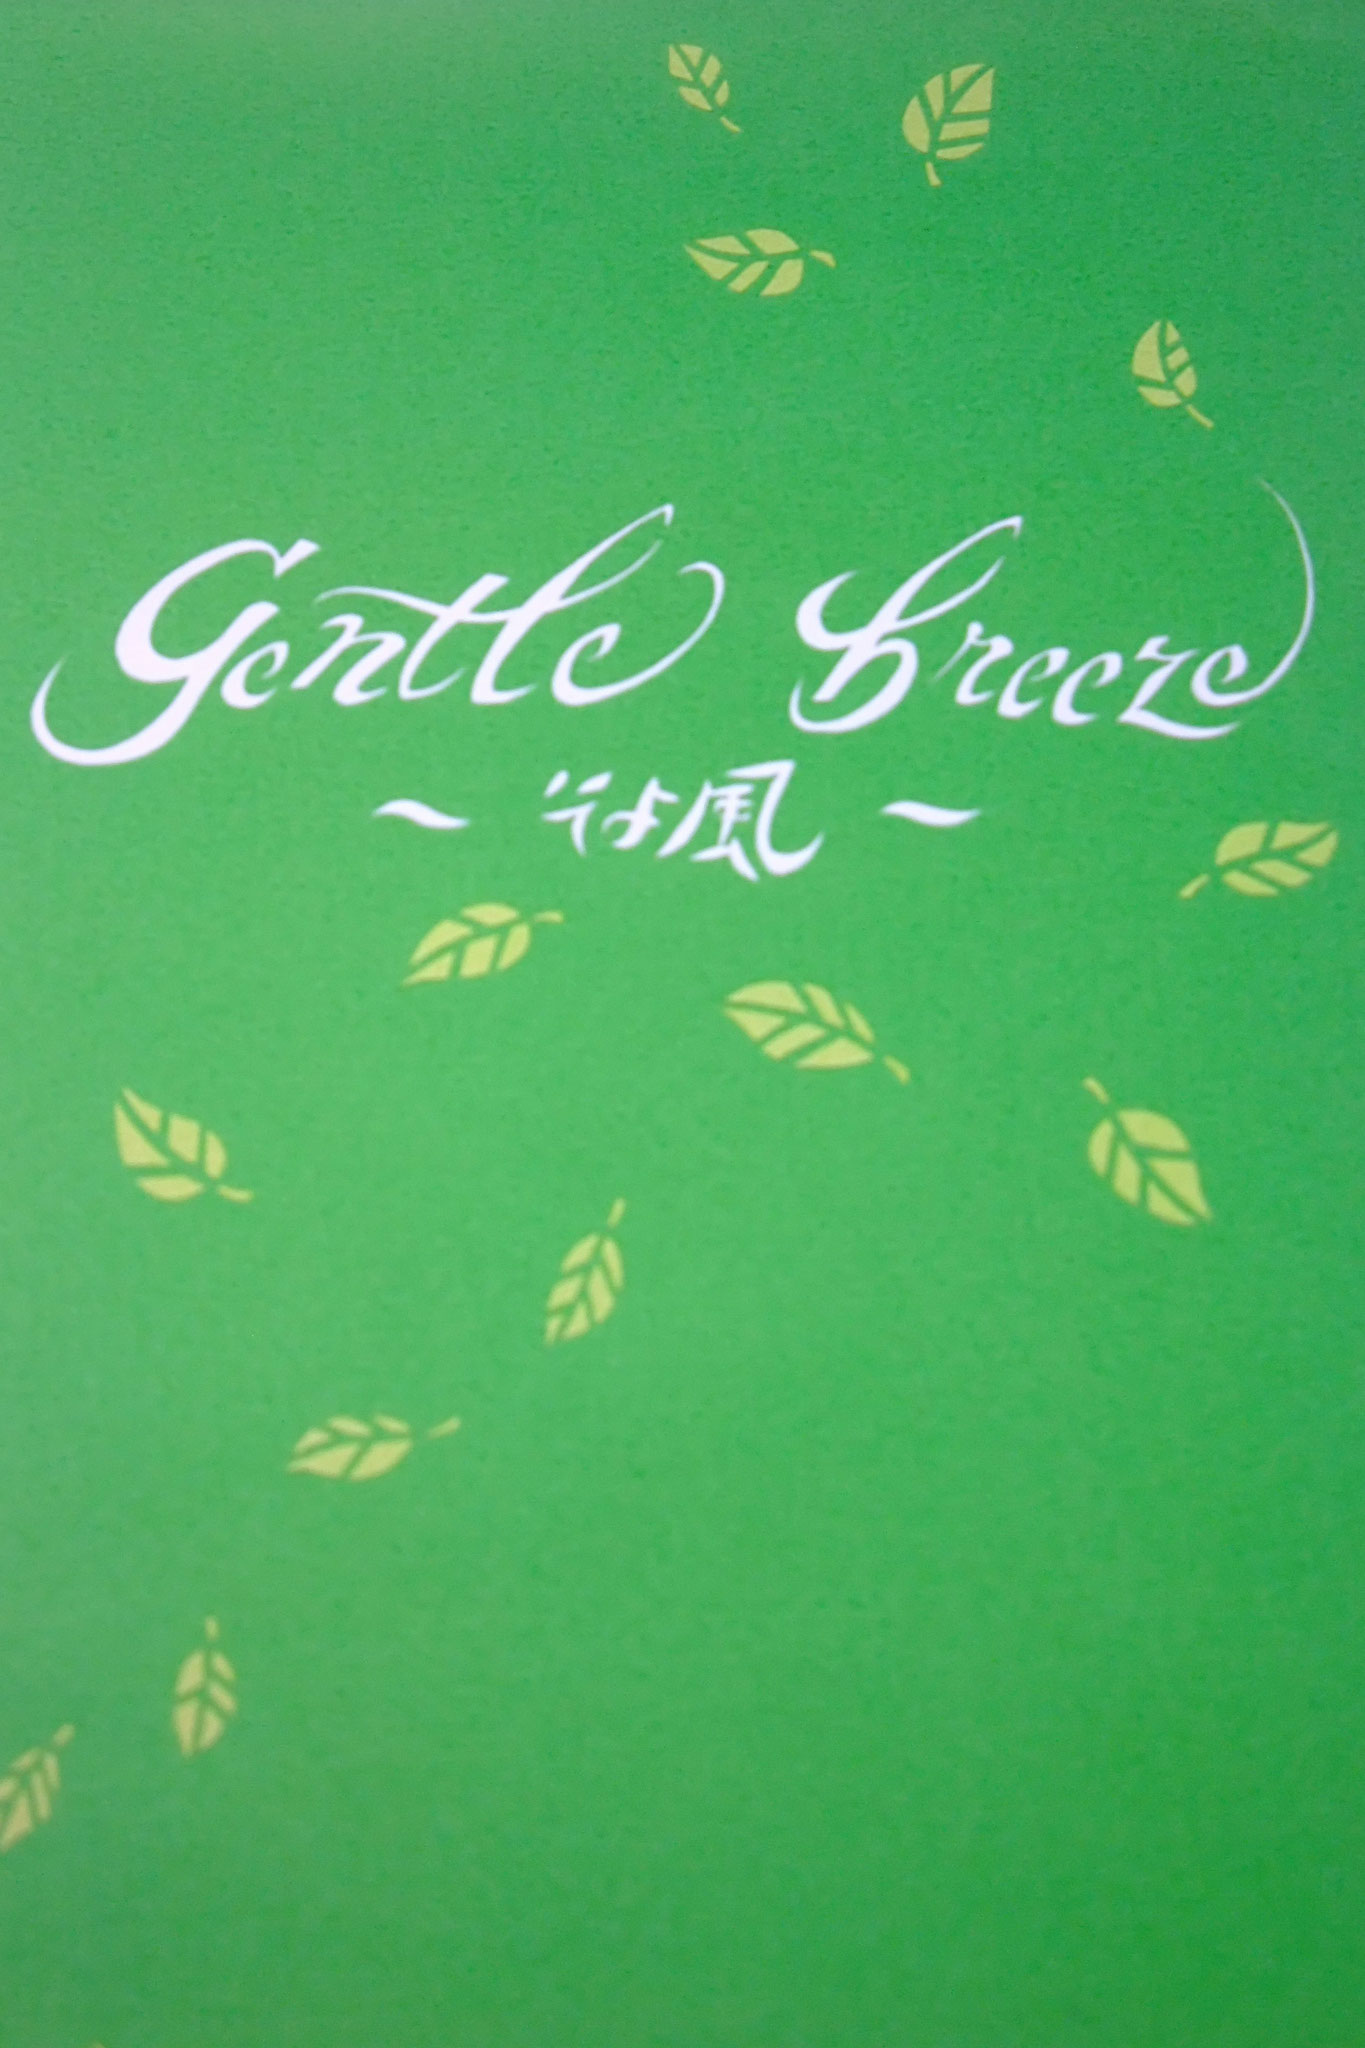 2013年春 個展 gentle breeze ~そよ風~